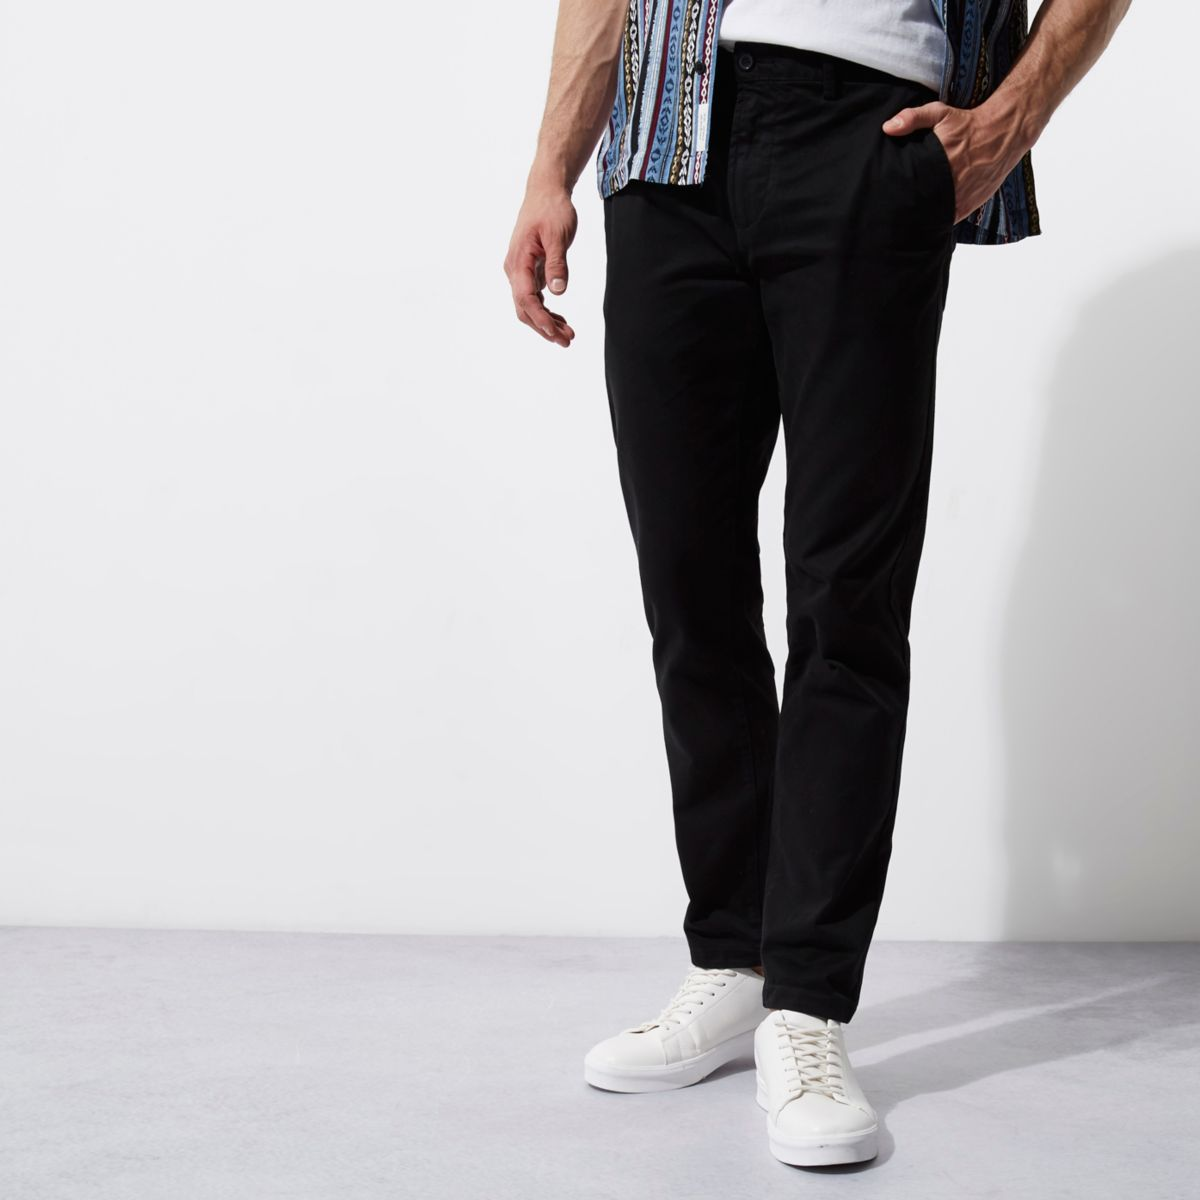 Pantalon chino slim noir casual